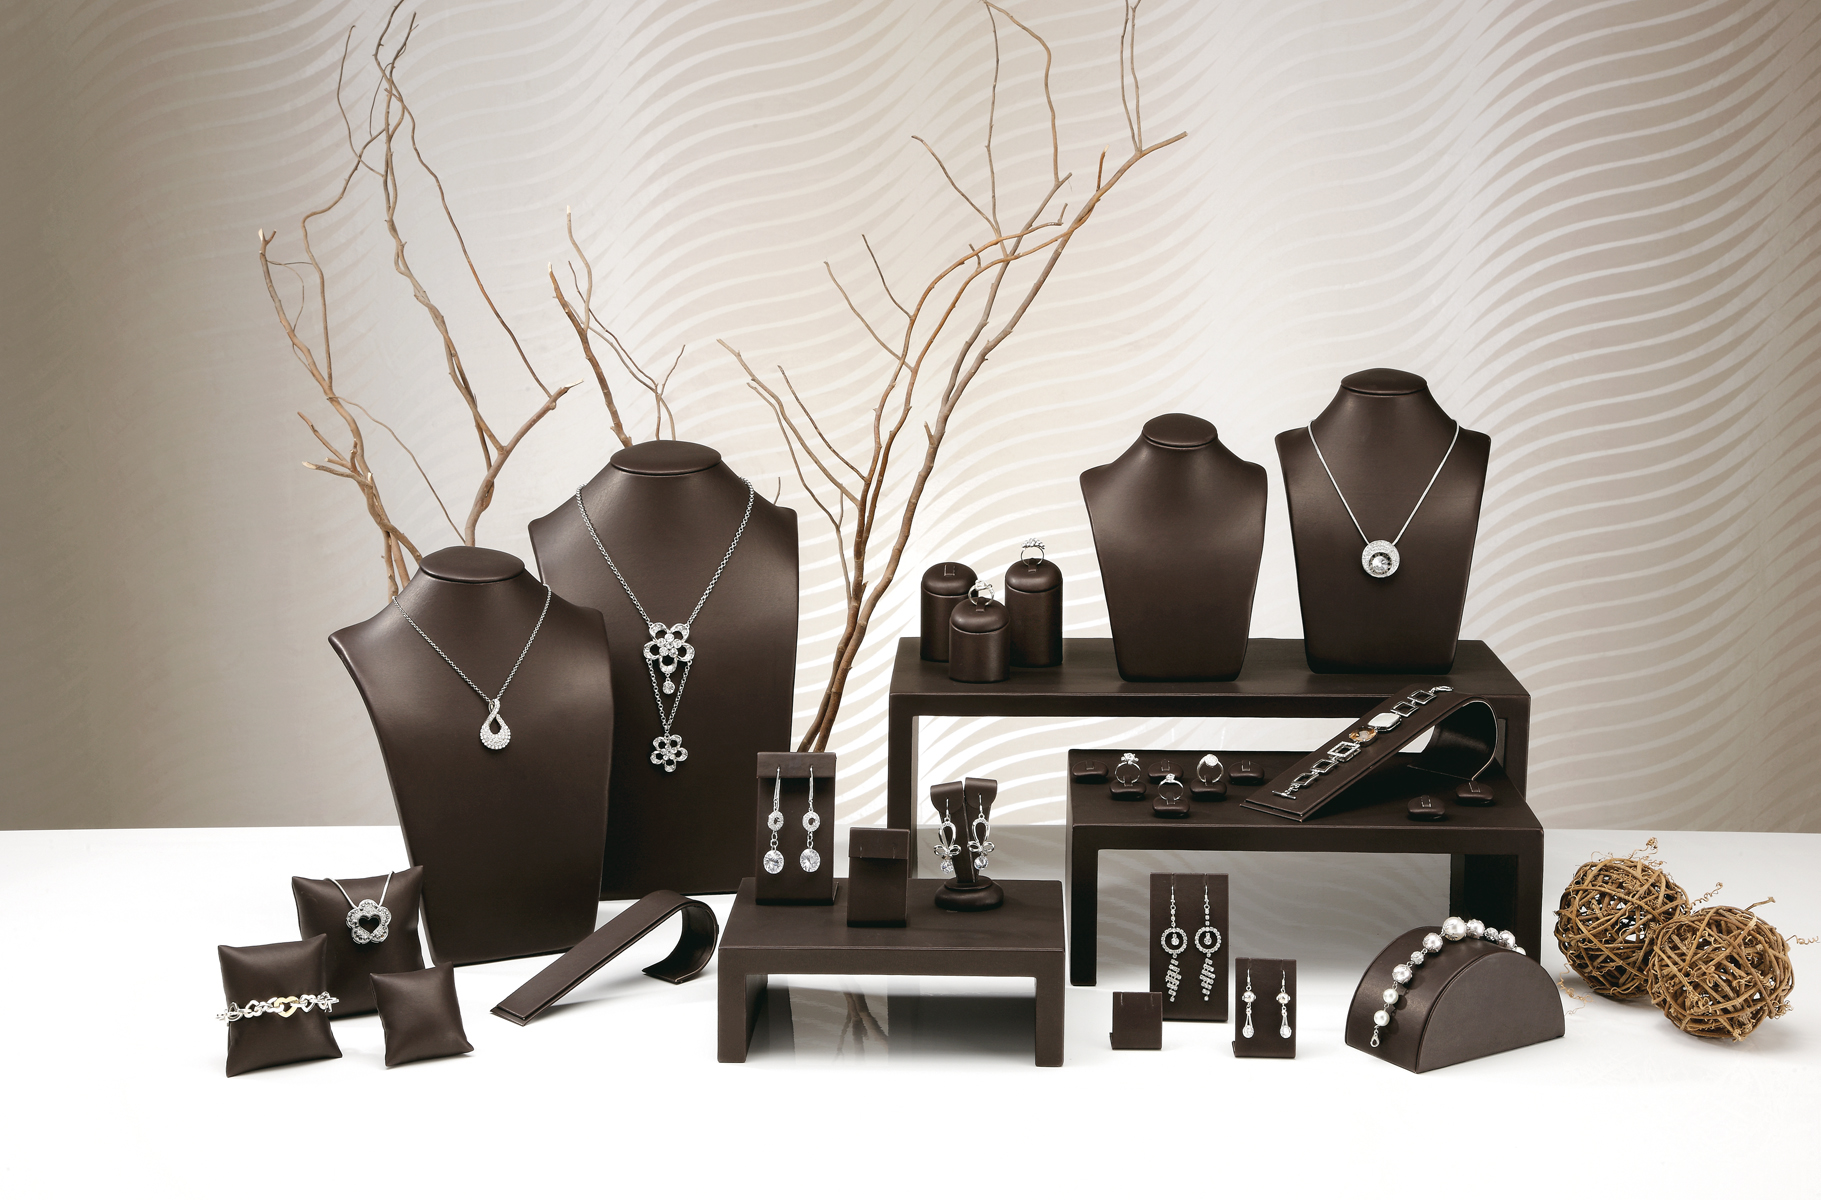 The Jewellery Display Sets available in Cream White, Brown ...